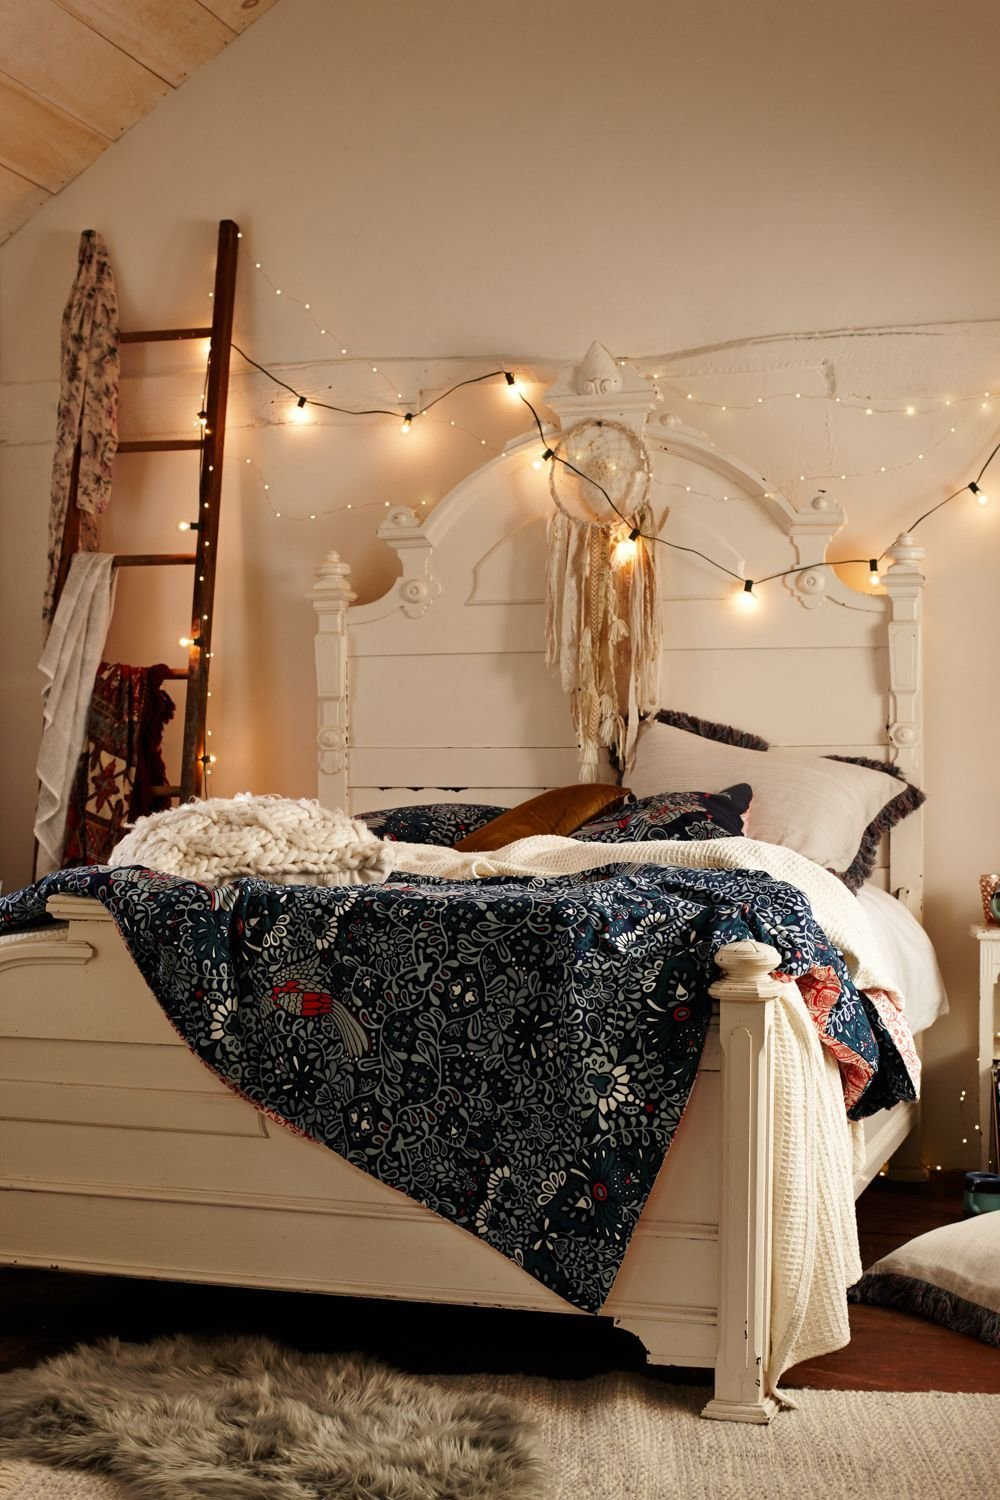 Best Urban Outfitters Bedroom On Pinterest Urban Outfitters With Pictures